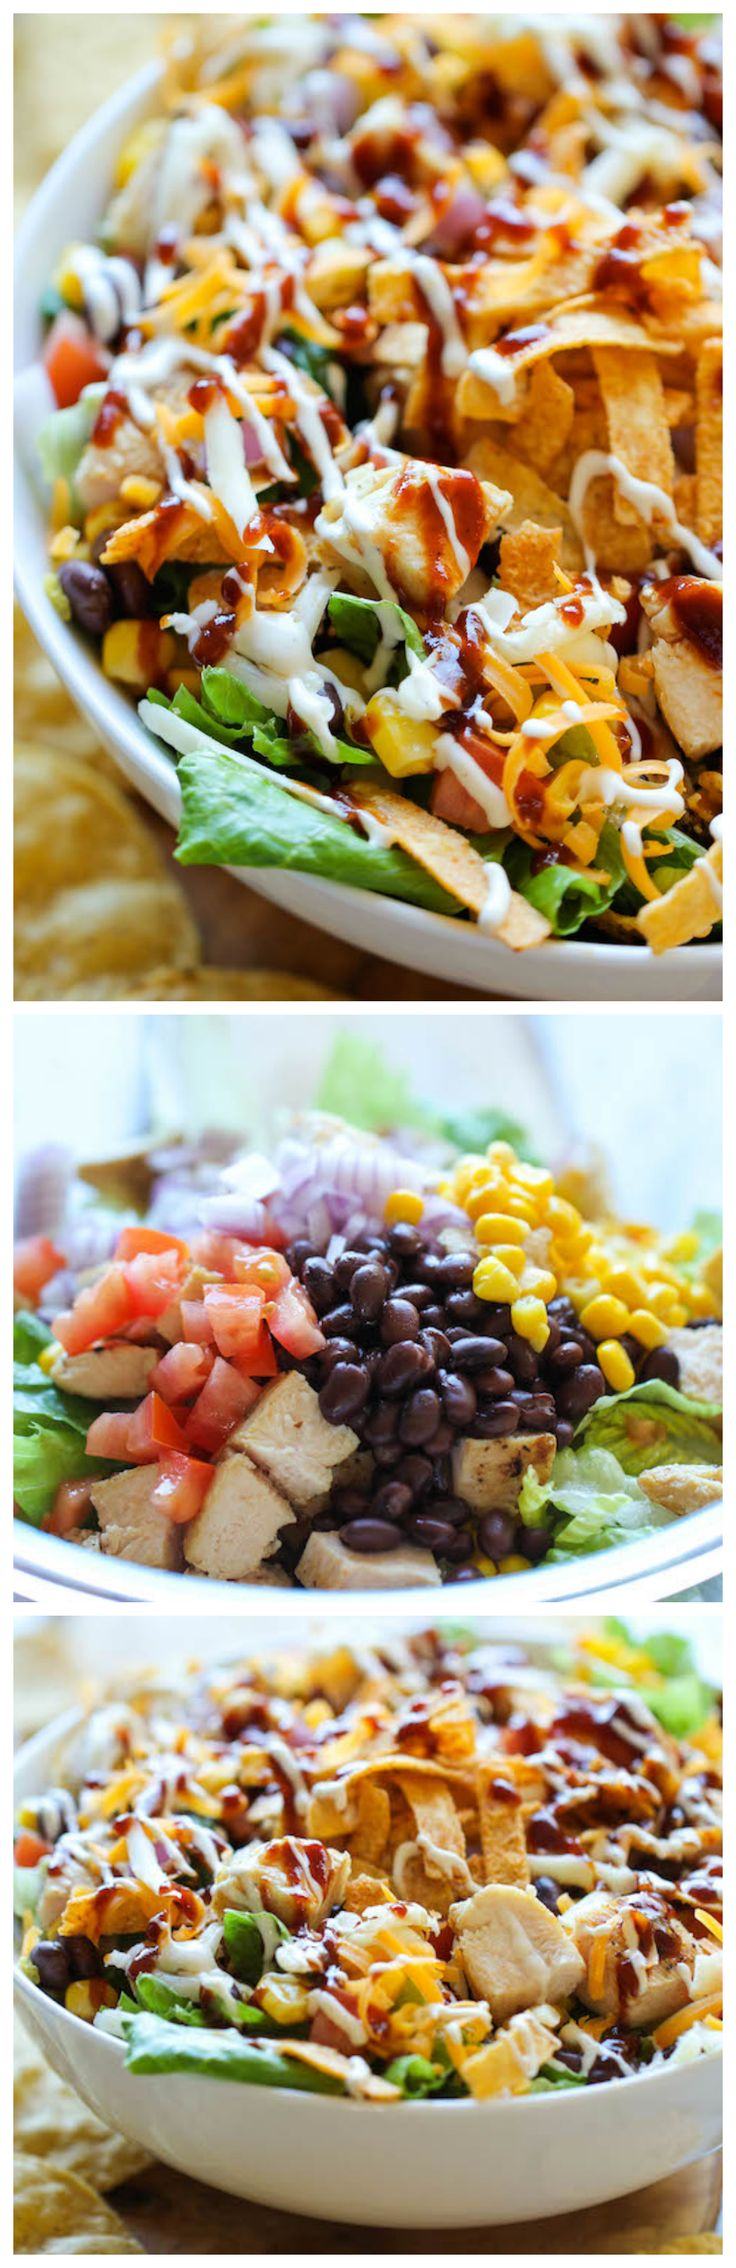 BBQ Chicken Salad - This healthy, flavorful salad comes together so quickly, and its guaranteed to be a hit with your entire family!